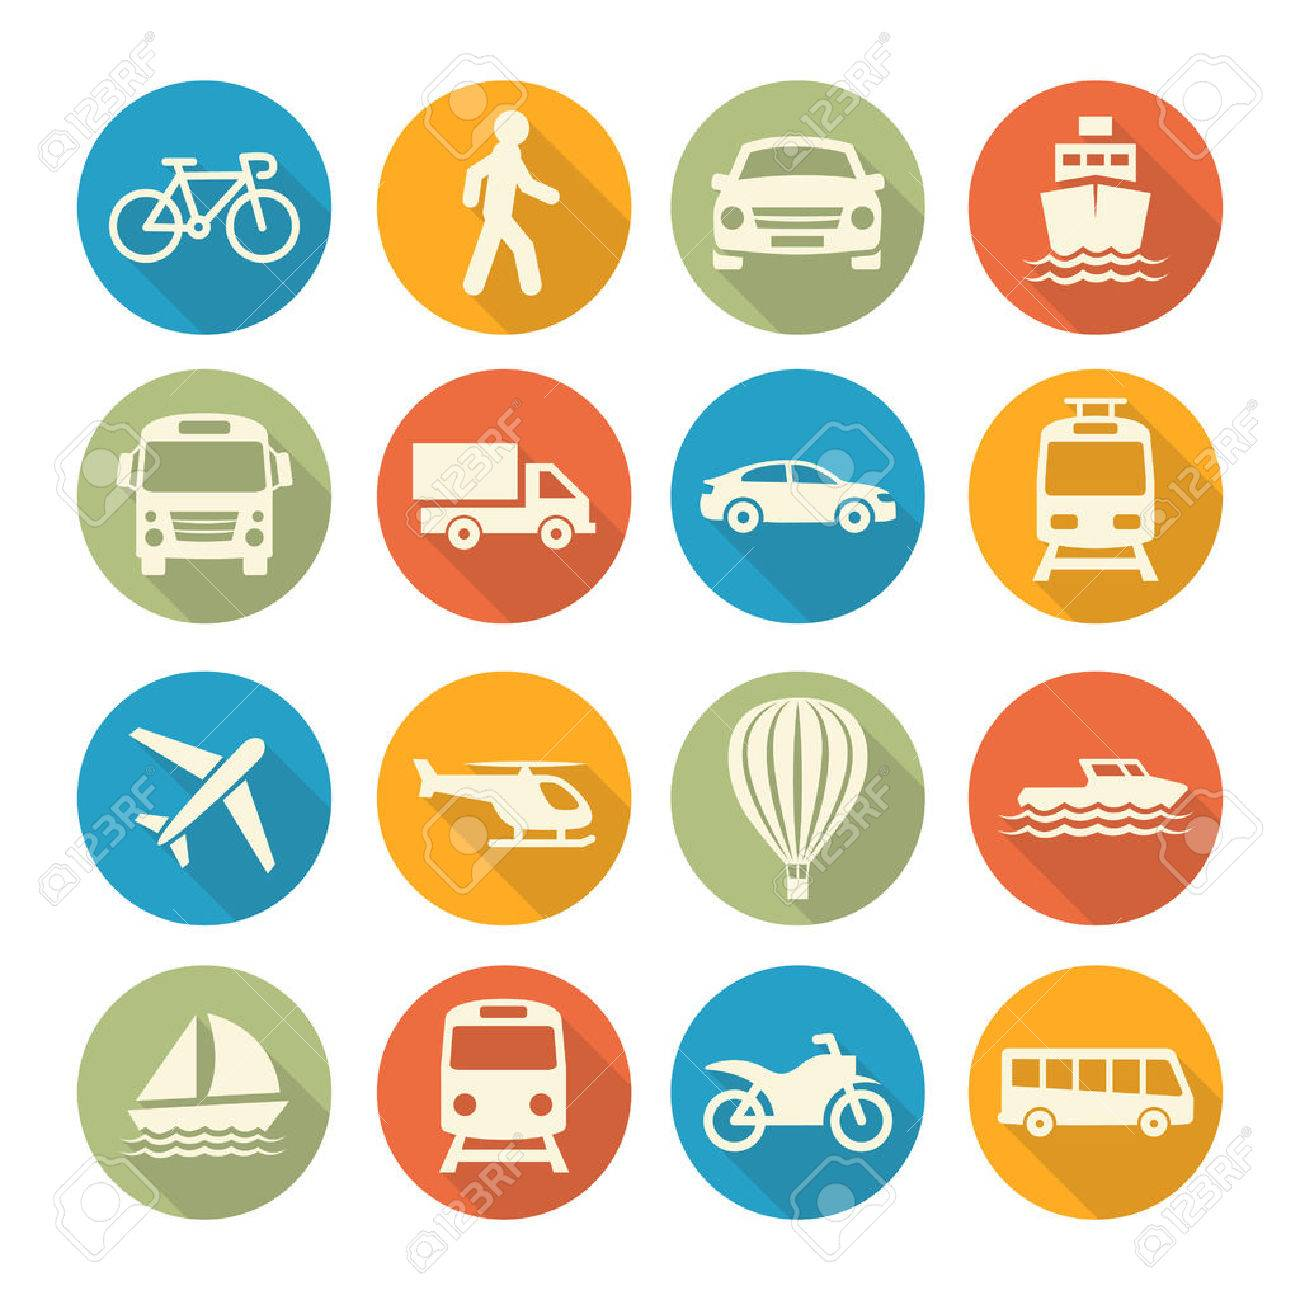 Colorful Transport set icons on white background - 49161534